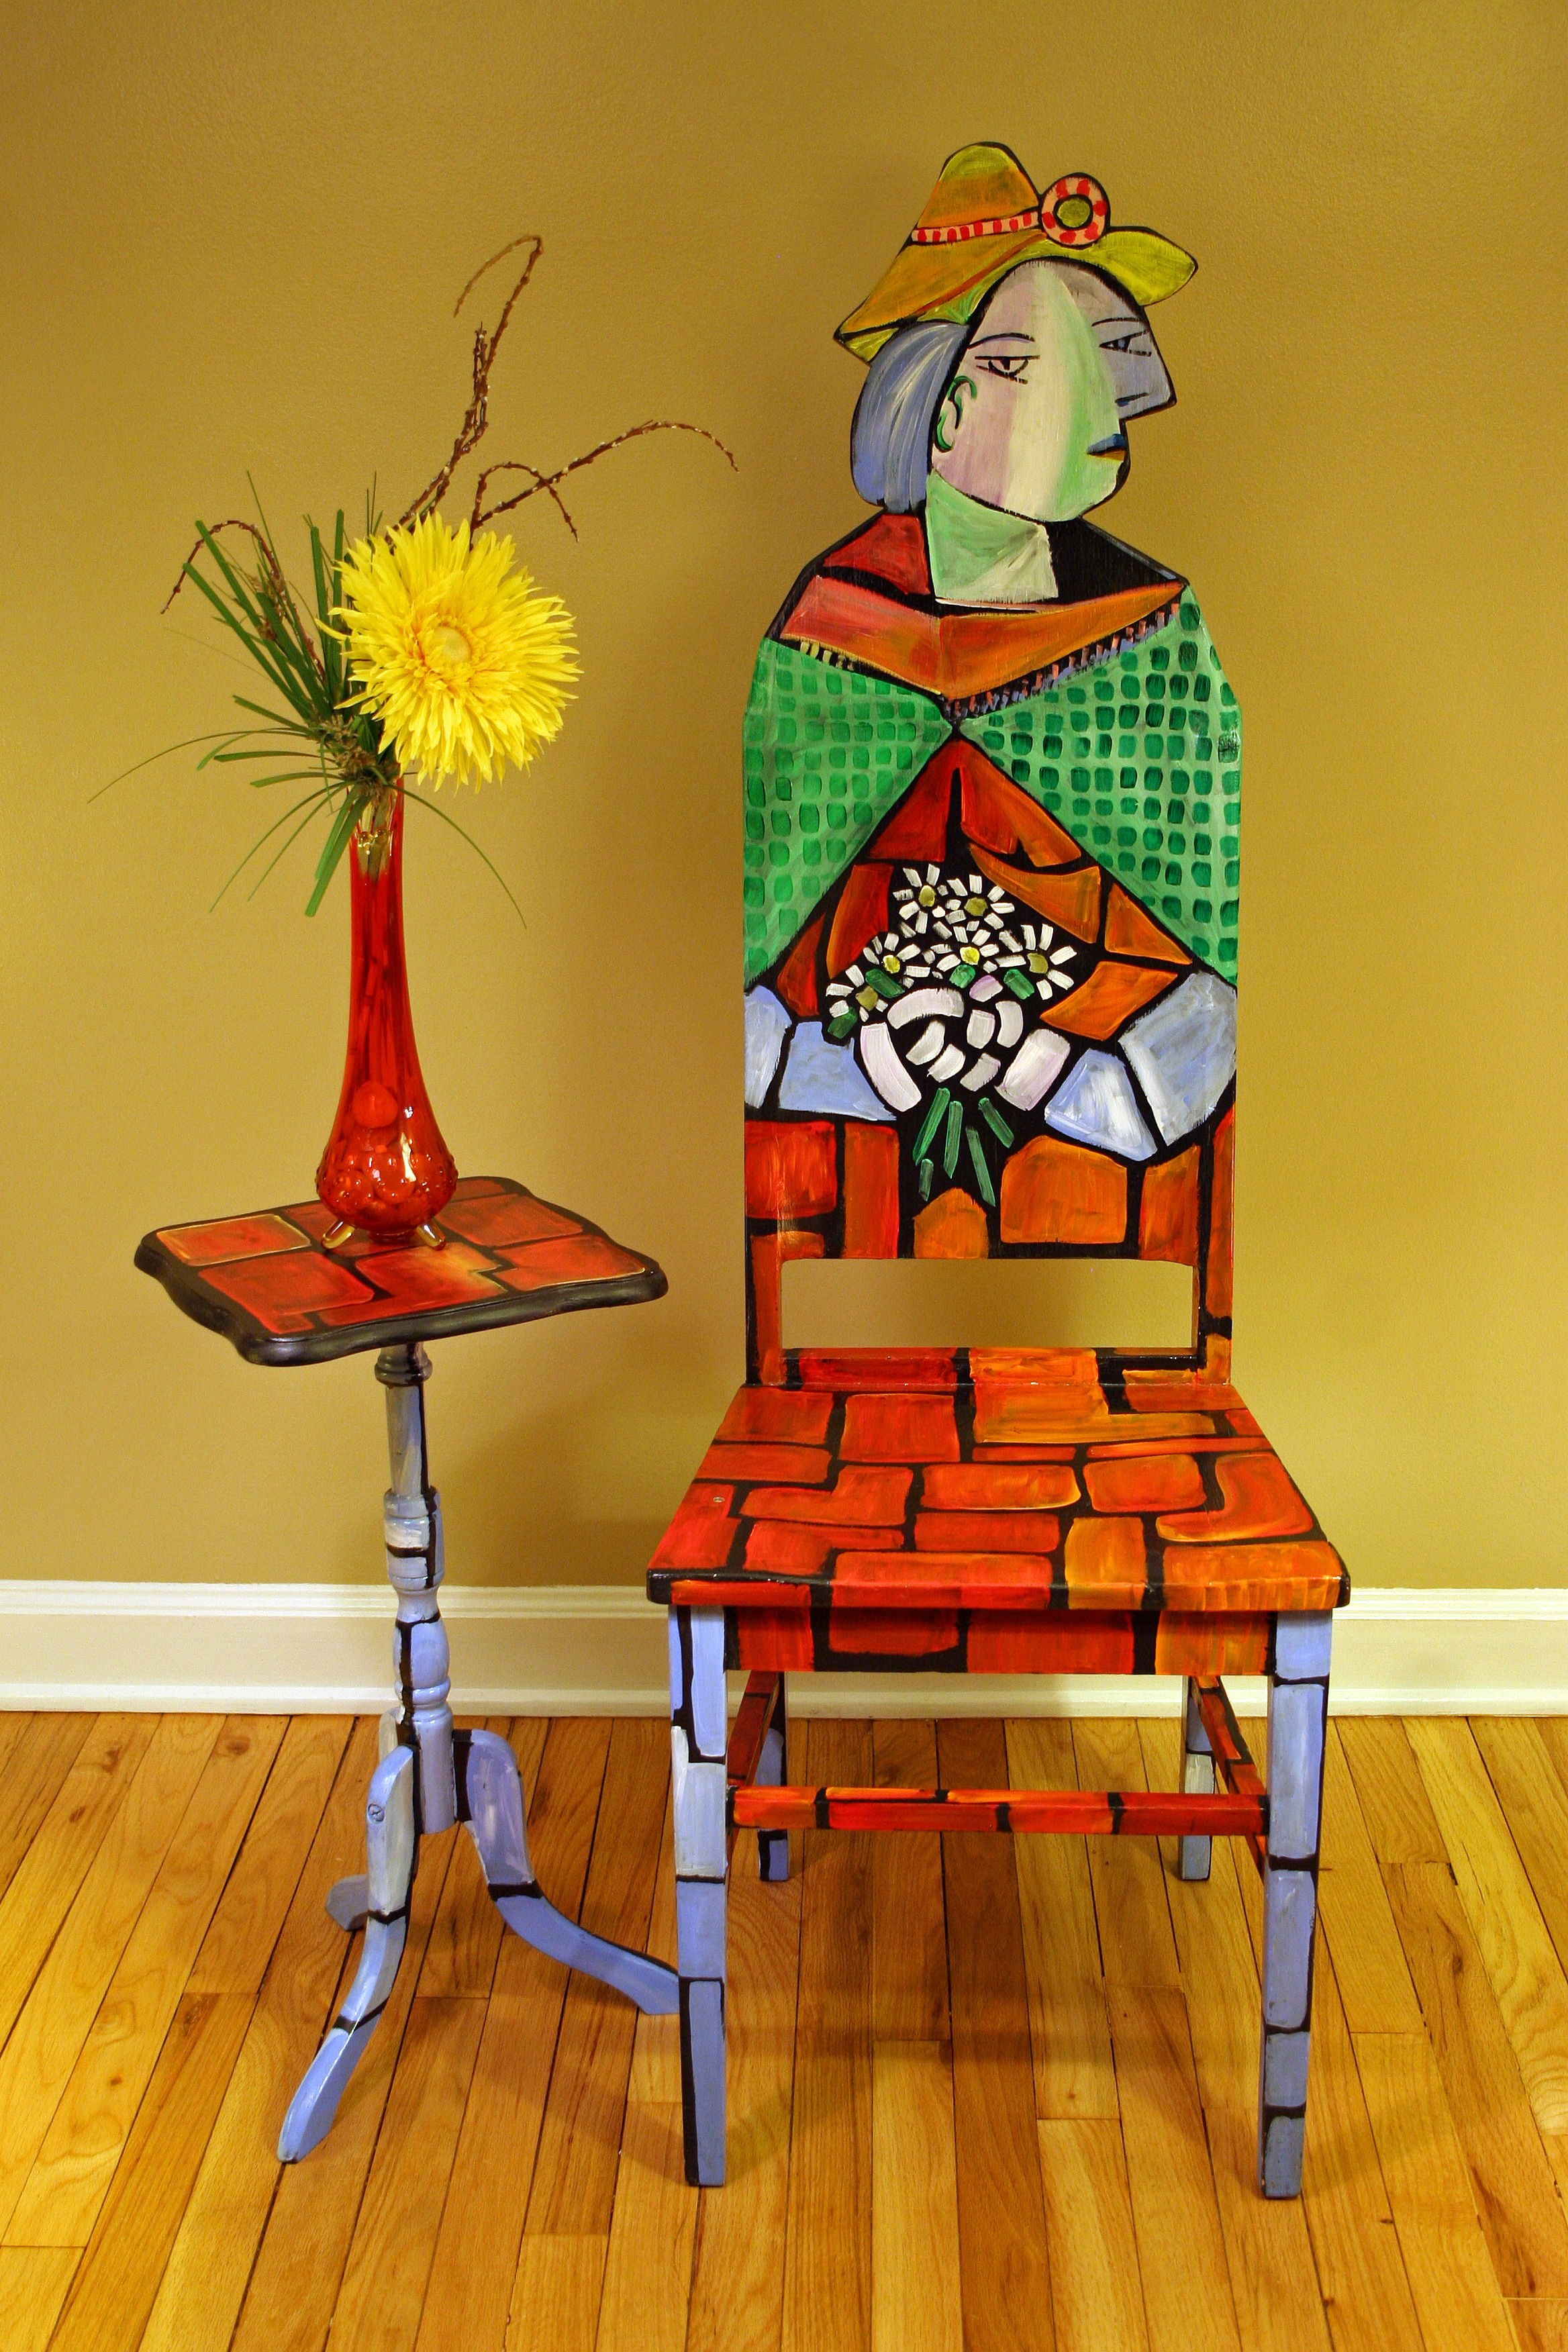 This Cubist Piece Of Artwork Uses Bright Red, Orange, Light Blue And Green  Acrylic. The Backside Of The Chair Has ...